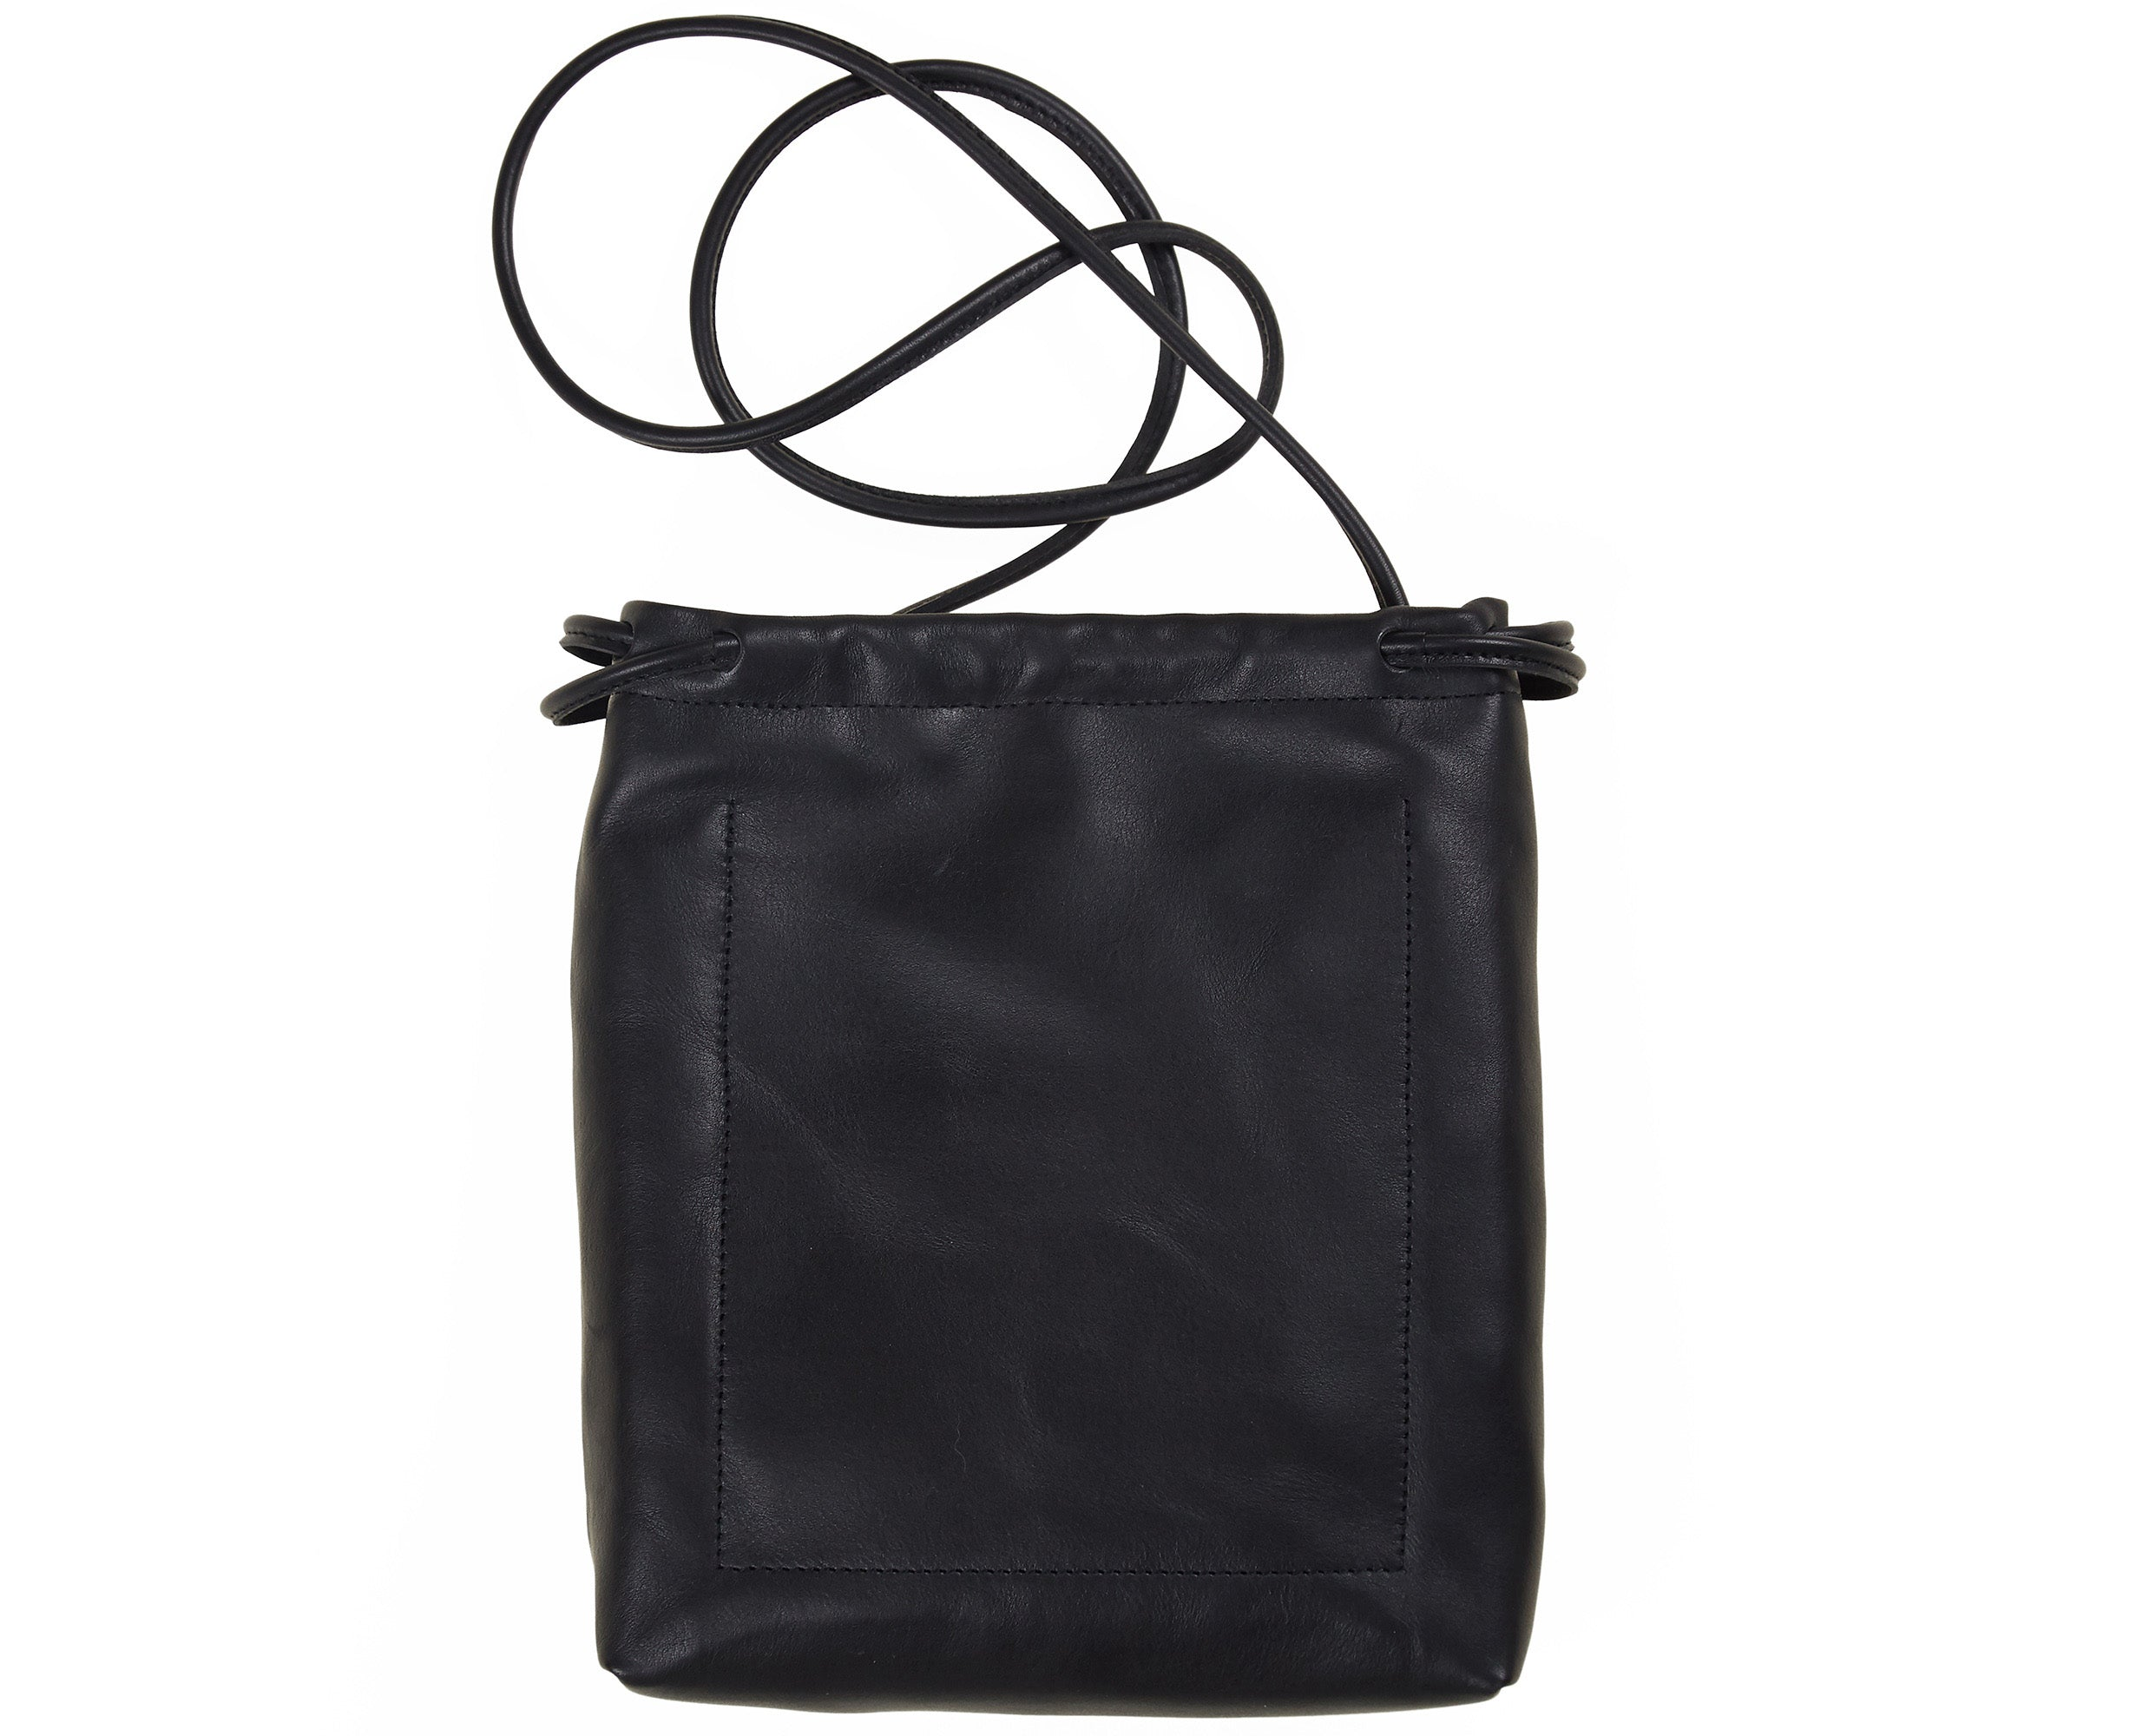 Small Adjustable Shoulder Bag Black